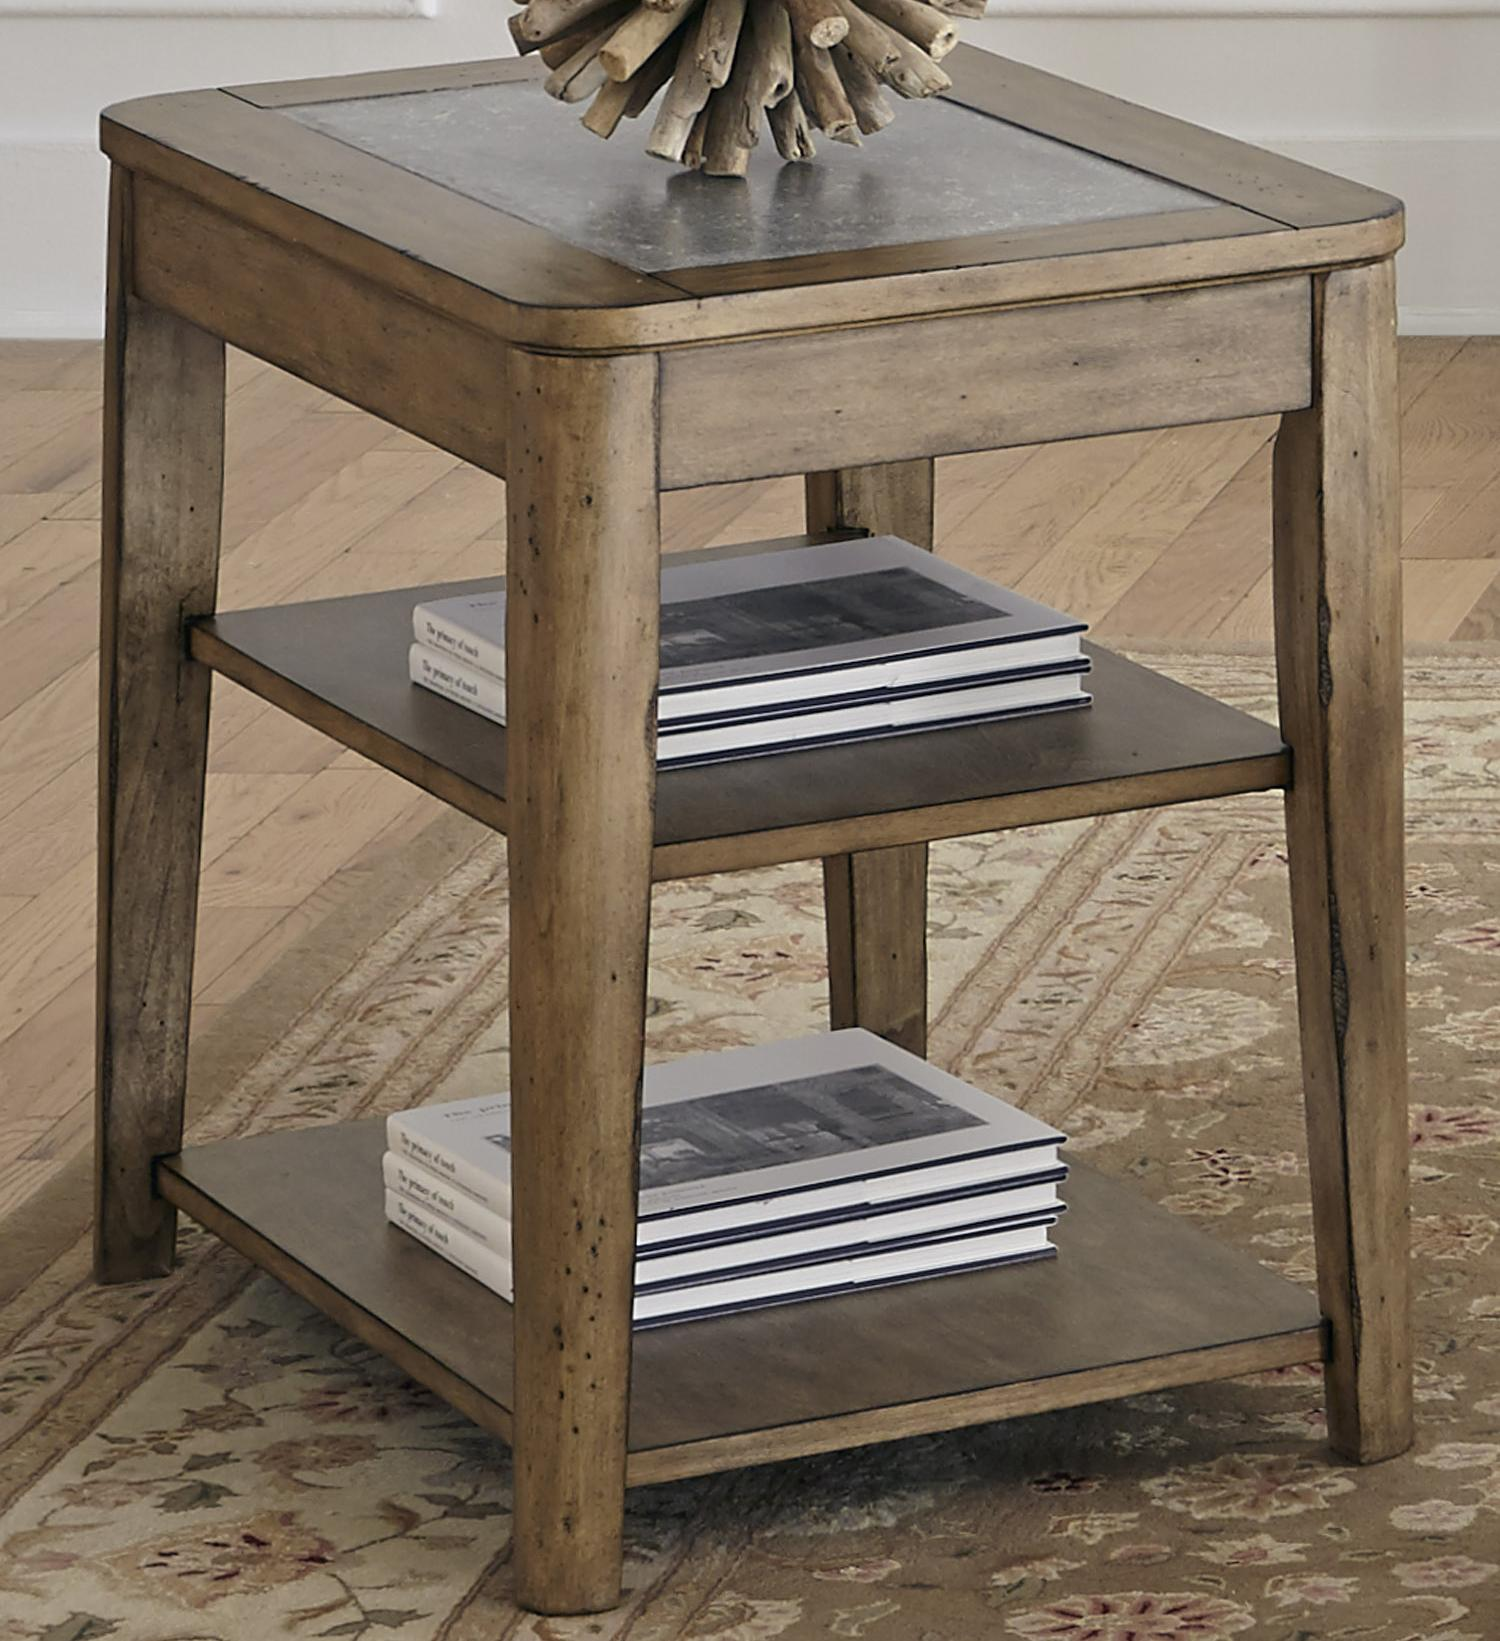 chair side tables with storage pride lift parts diagram liberty furniture weatherford table concrete top item number 645 ot1021